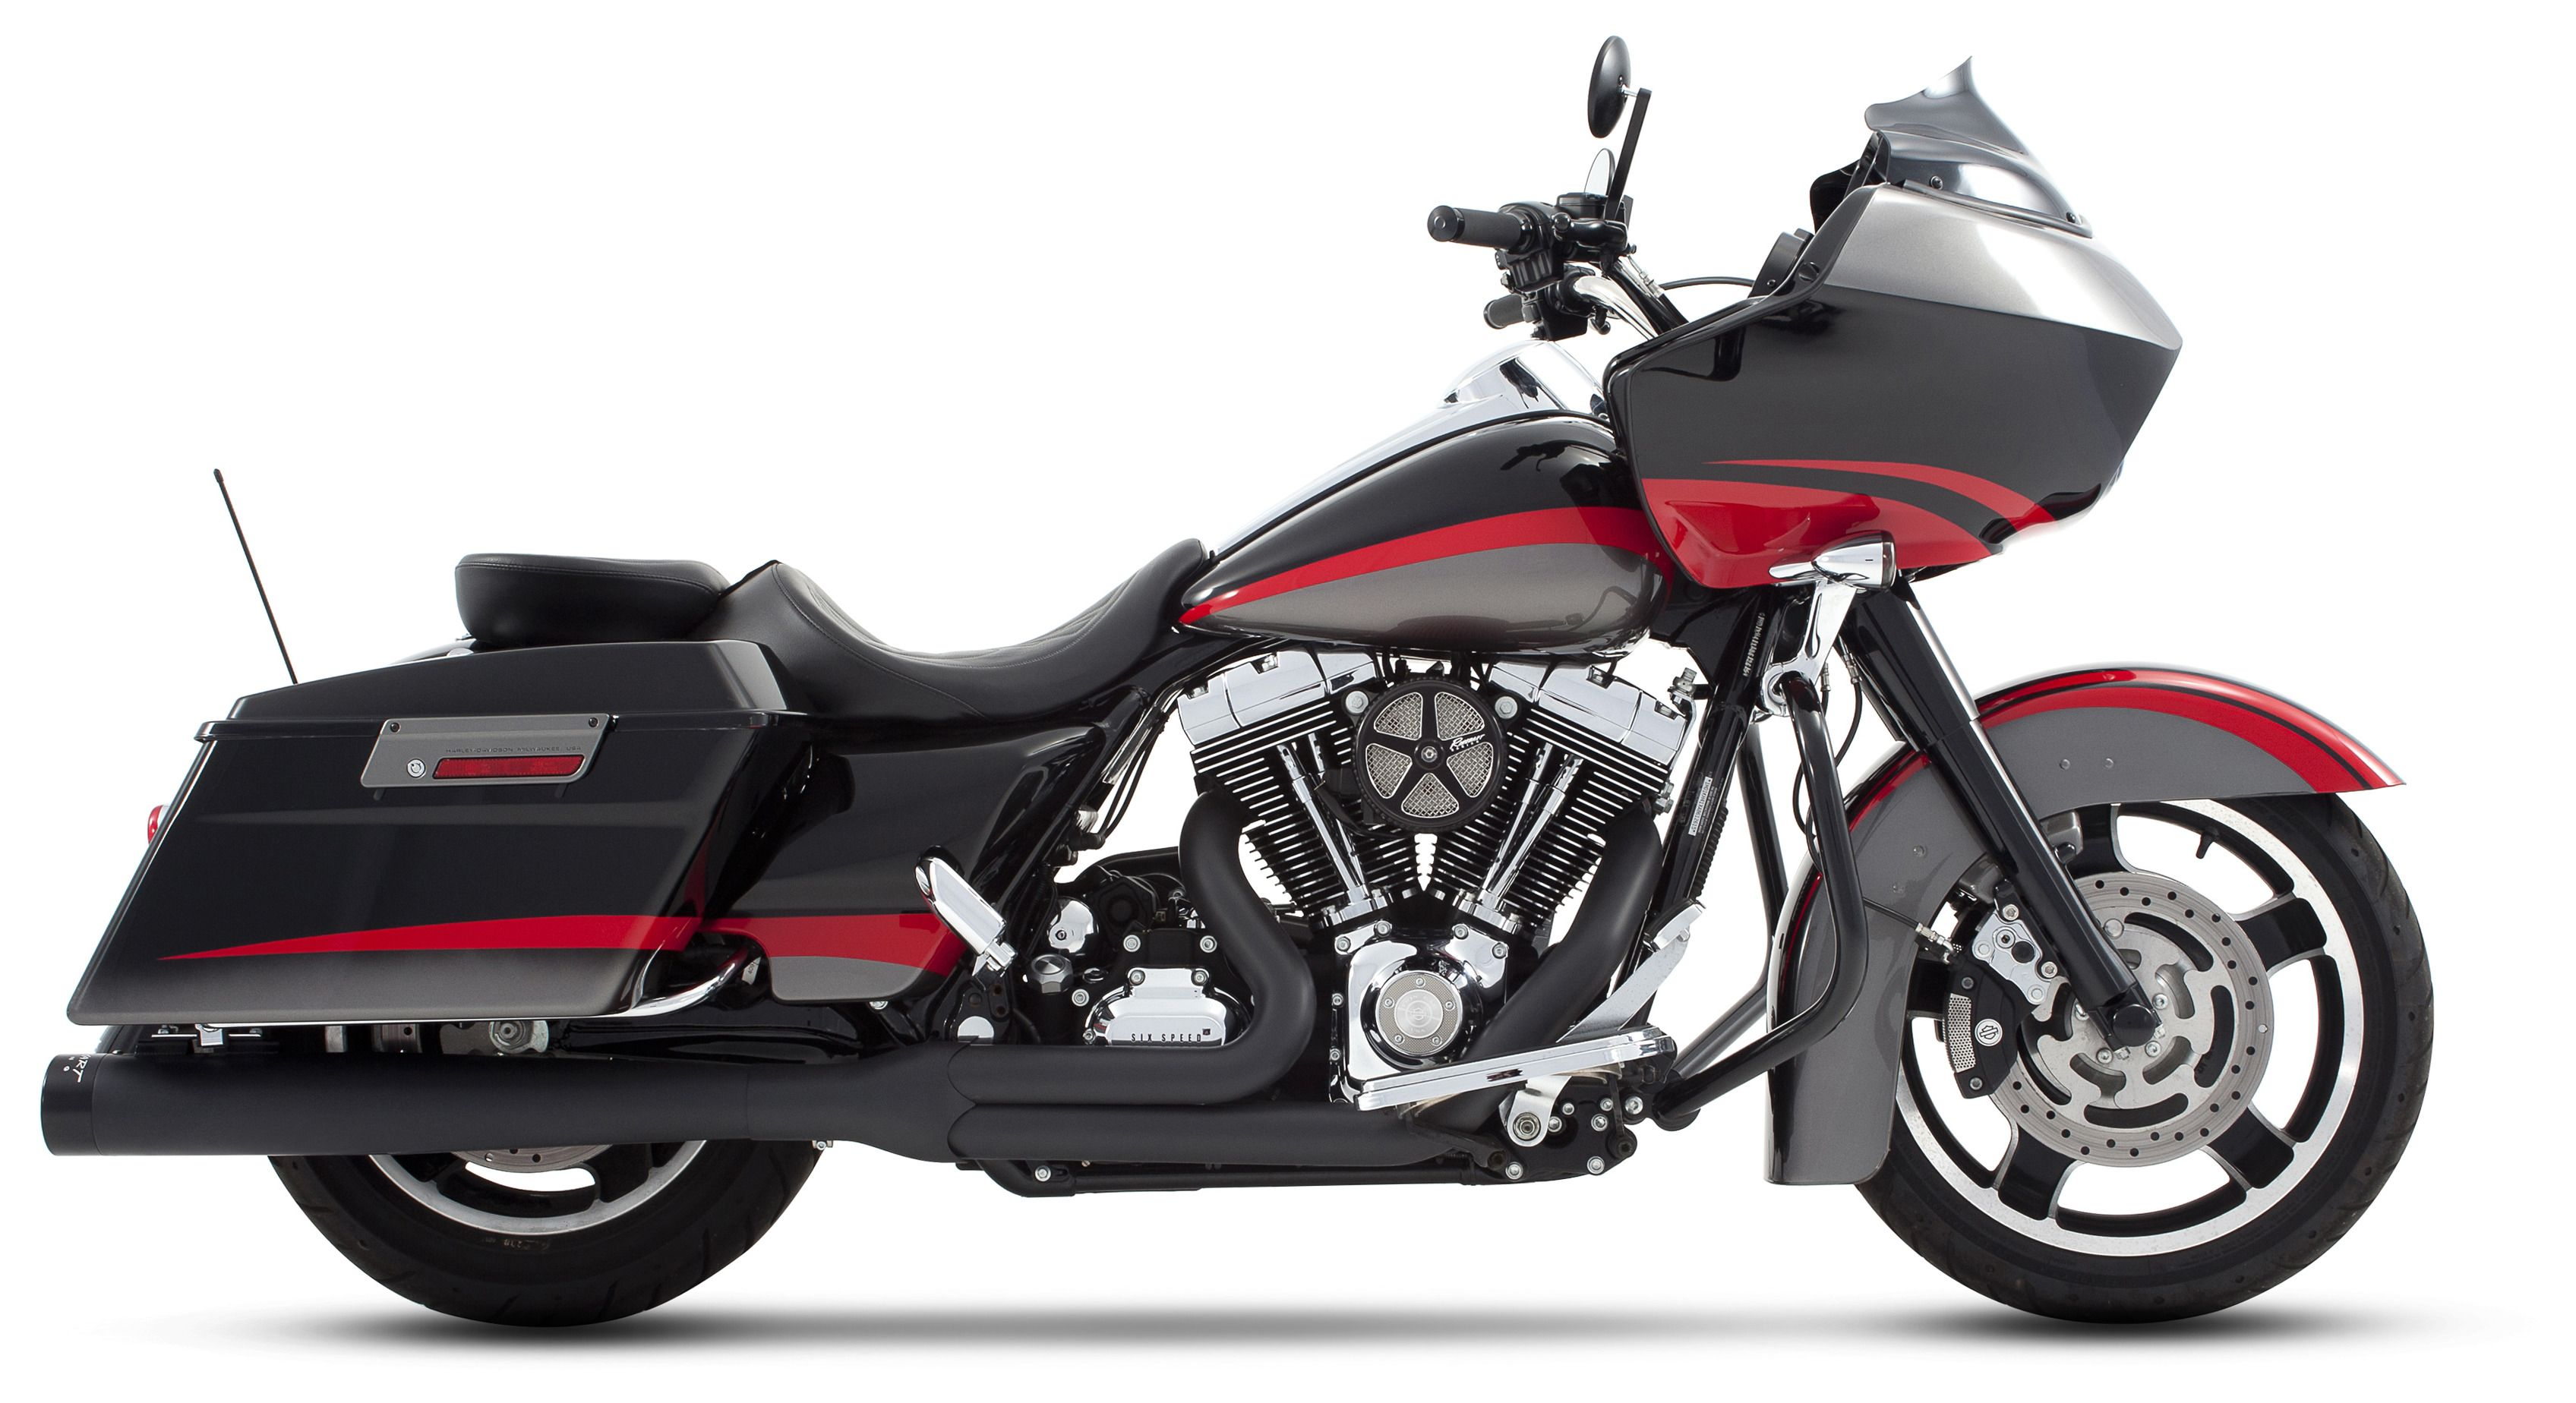 Rinehart 2-Into-1 Exhaust For Harley Touring 2009-2016